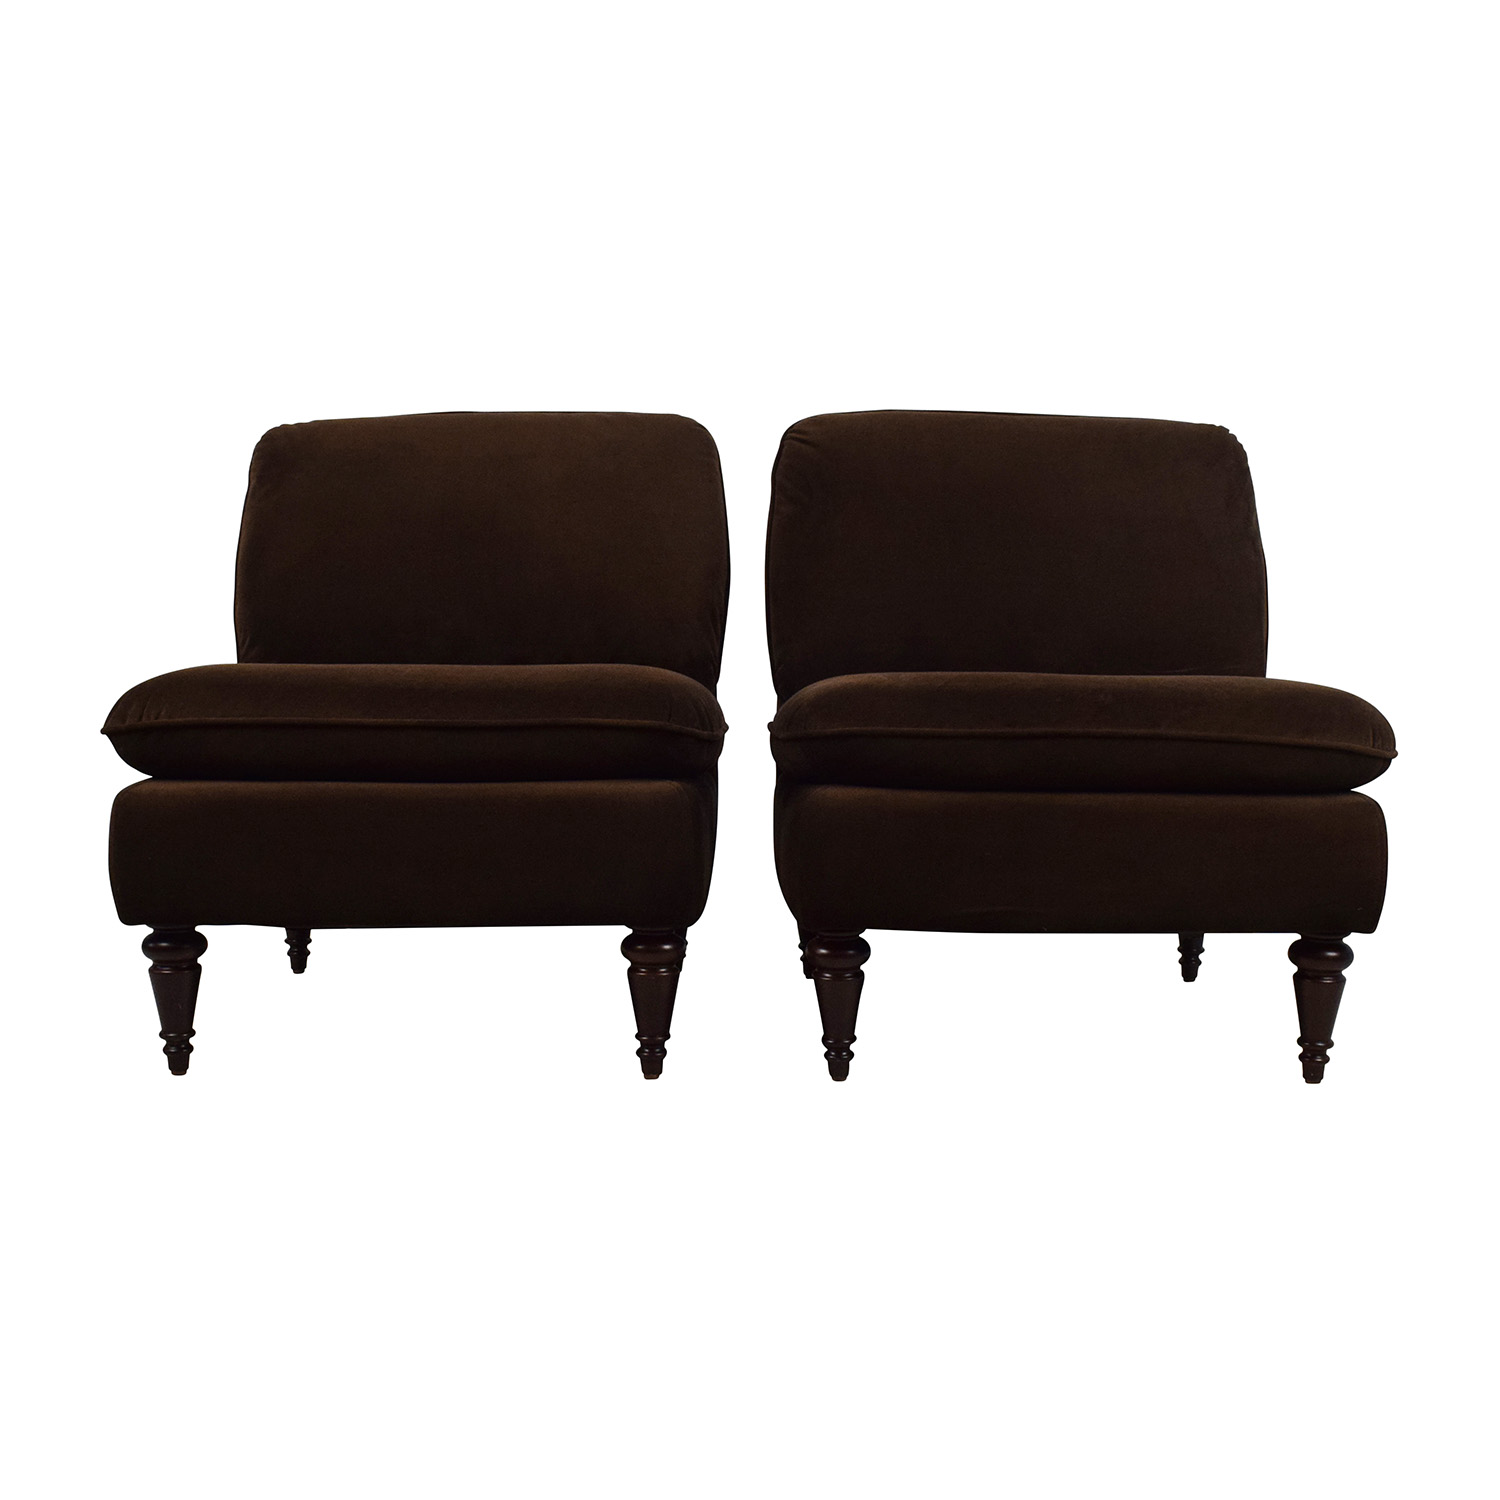 shop World Market Pair of Brown Velvet Chairs World Market